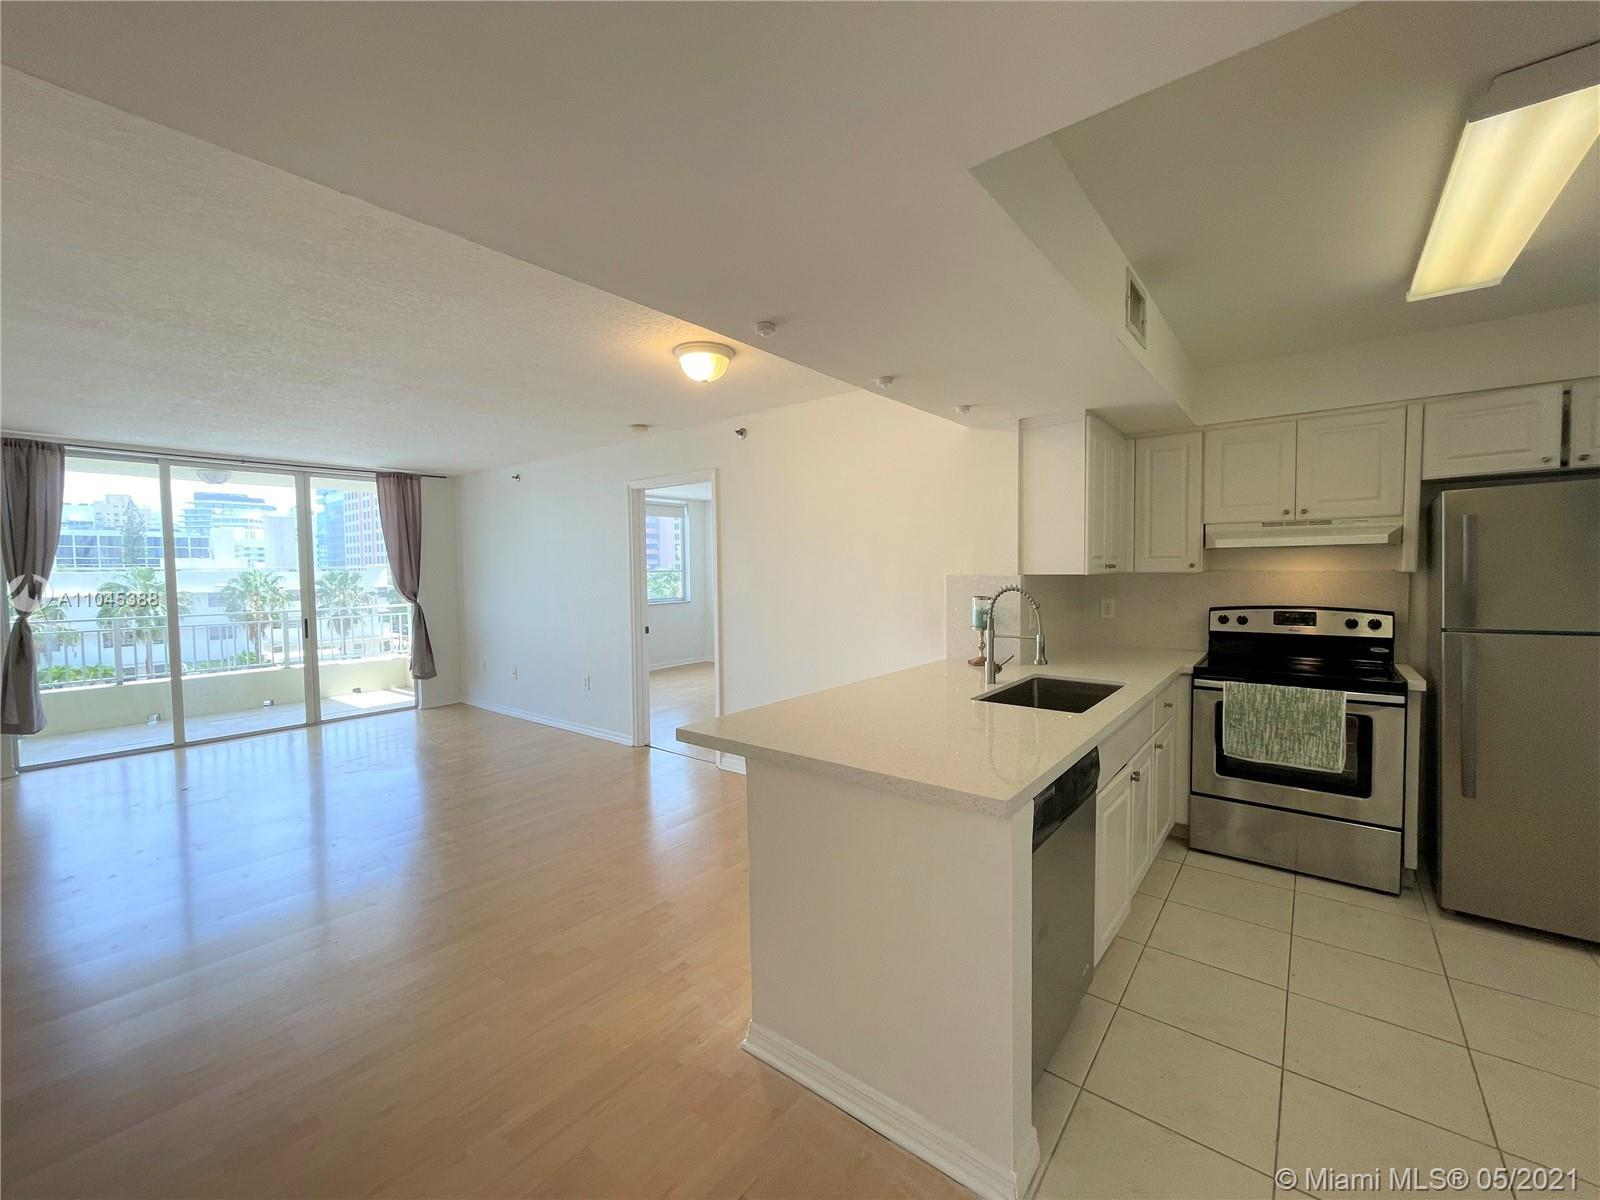 ATTENTION INVESTOR GREAT OPPORTUNITY TO BUY WITH GREAT TENANTS. AMAZING LOCATION! SPACIOUS 2BED/2BAT